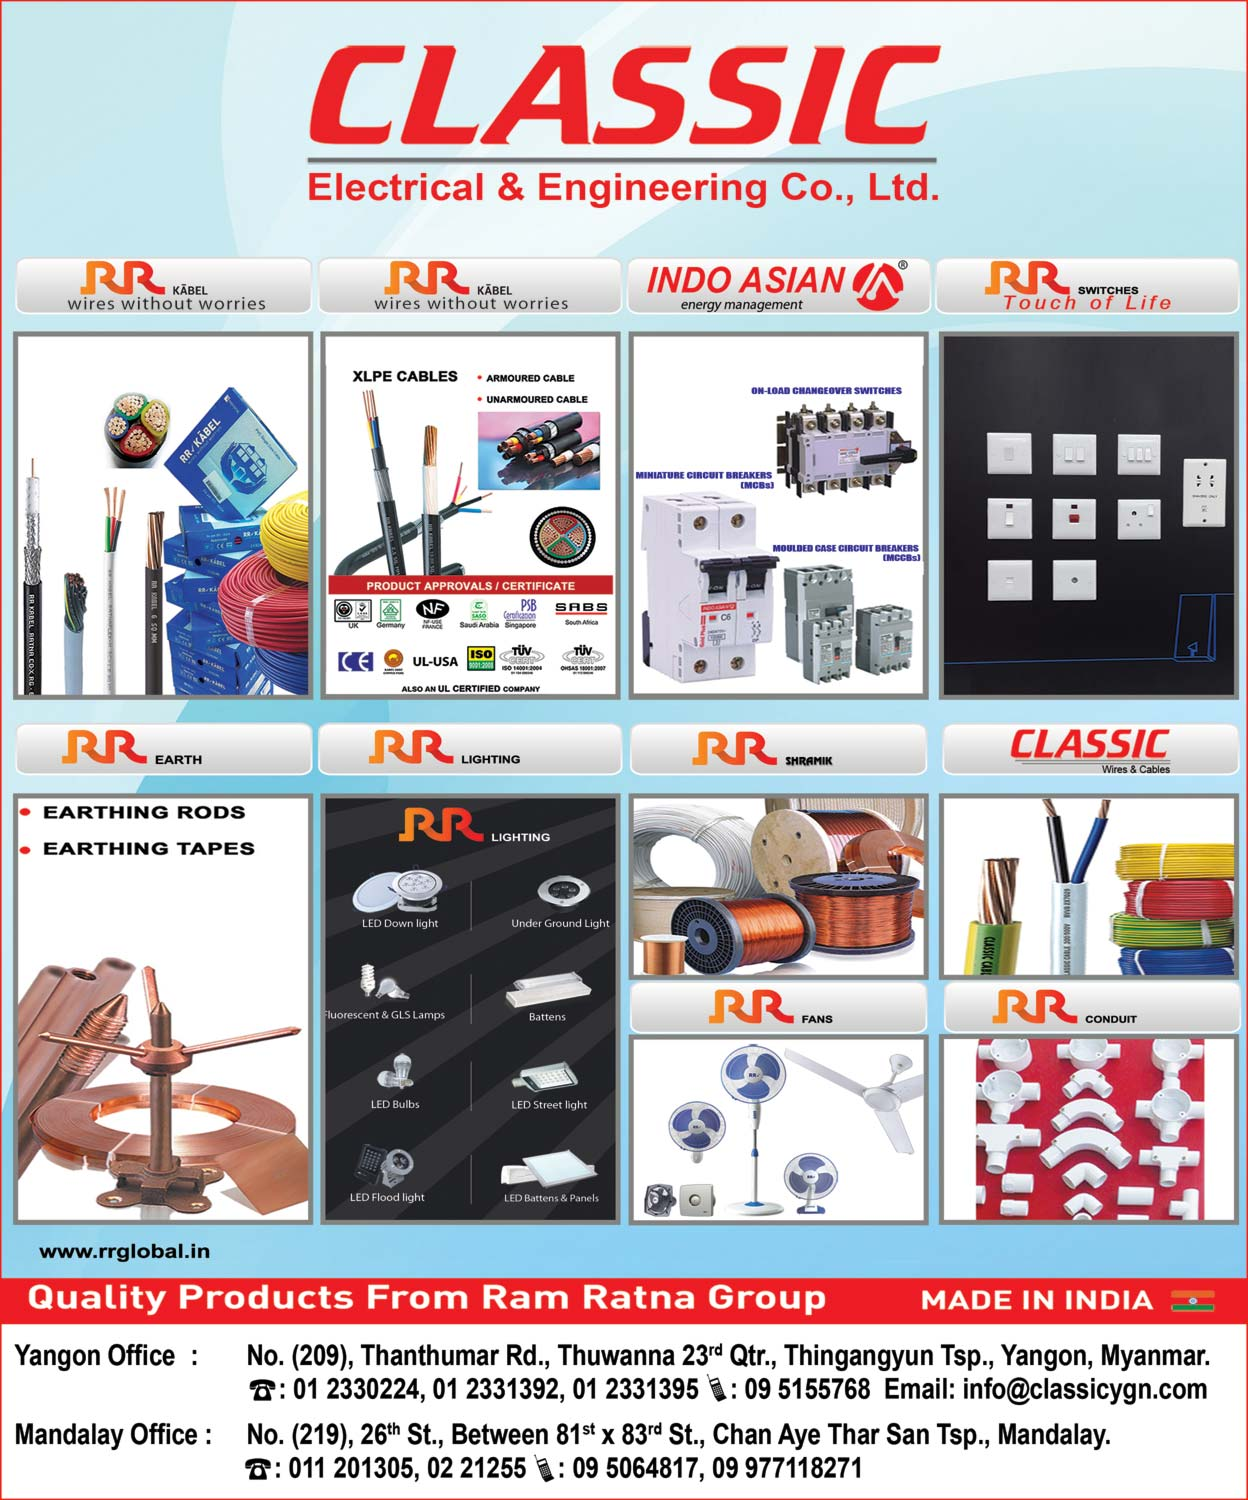 Classic Electrical & Engineering Co., Ltd.Cables & Wires [Manu/Dist]